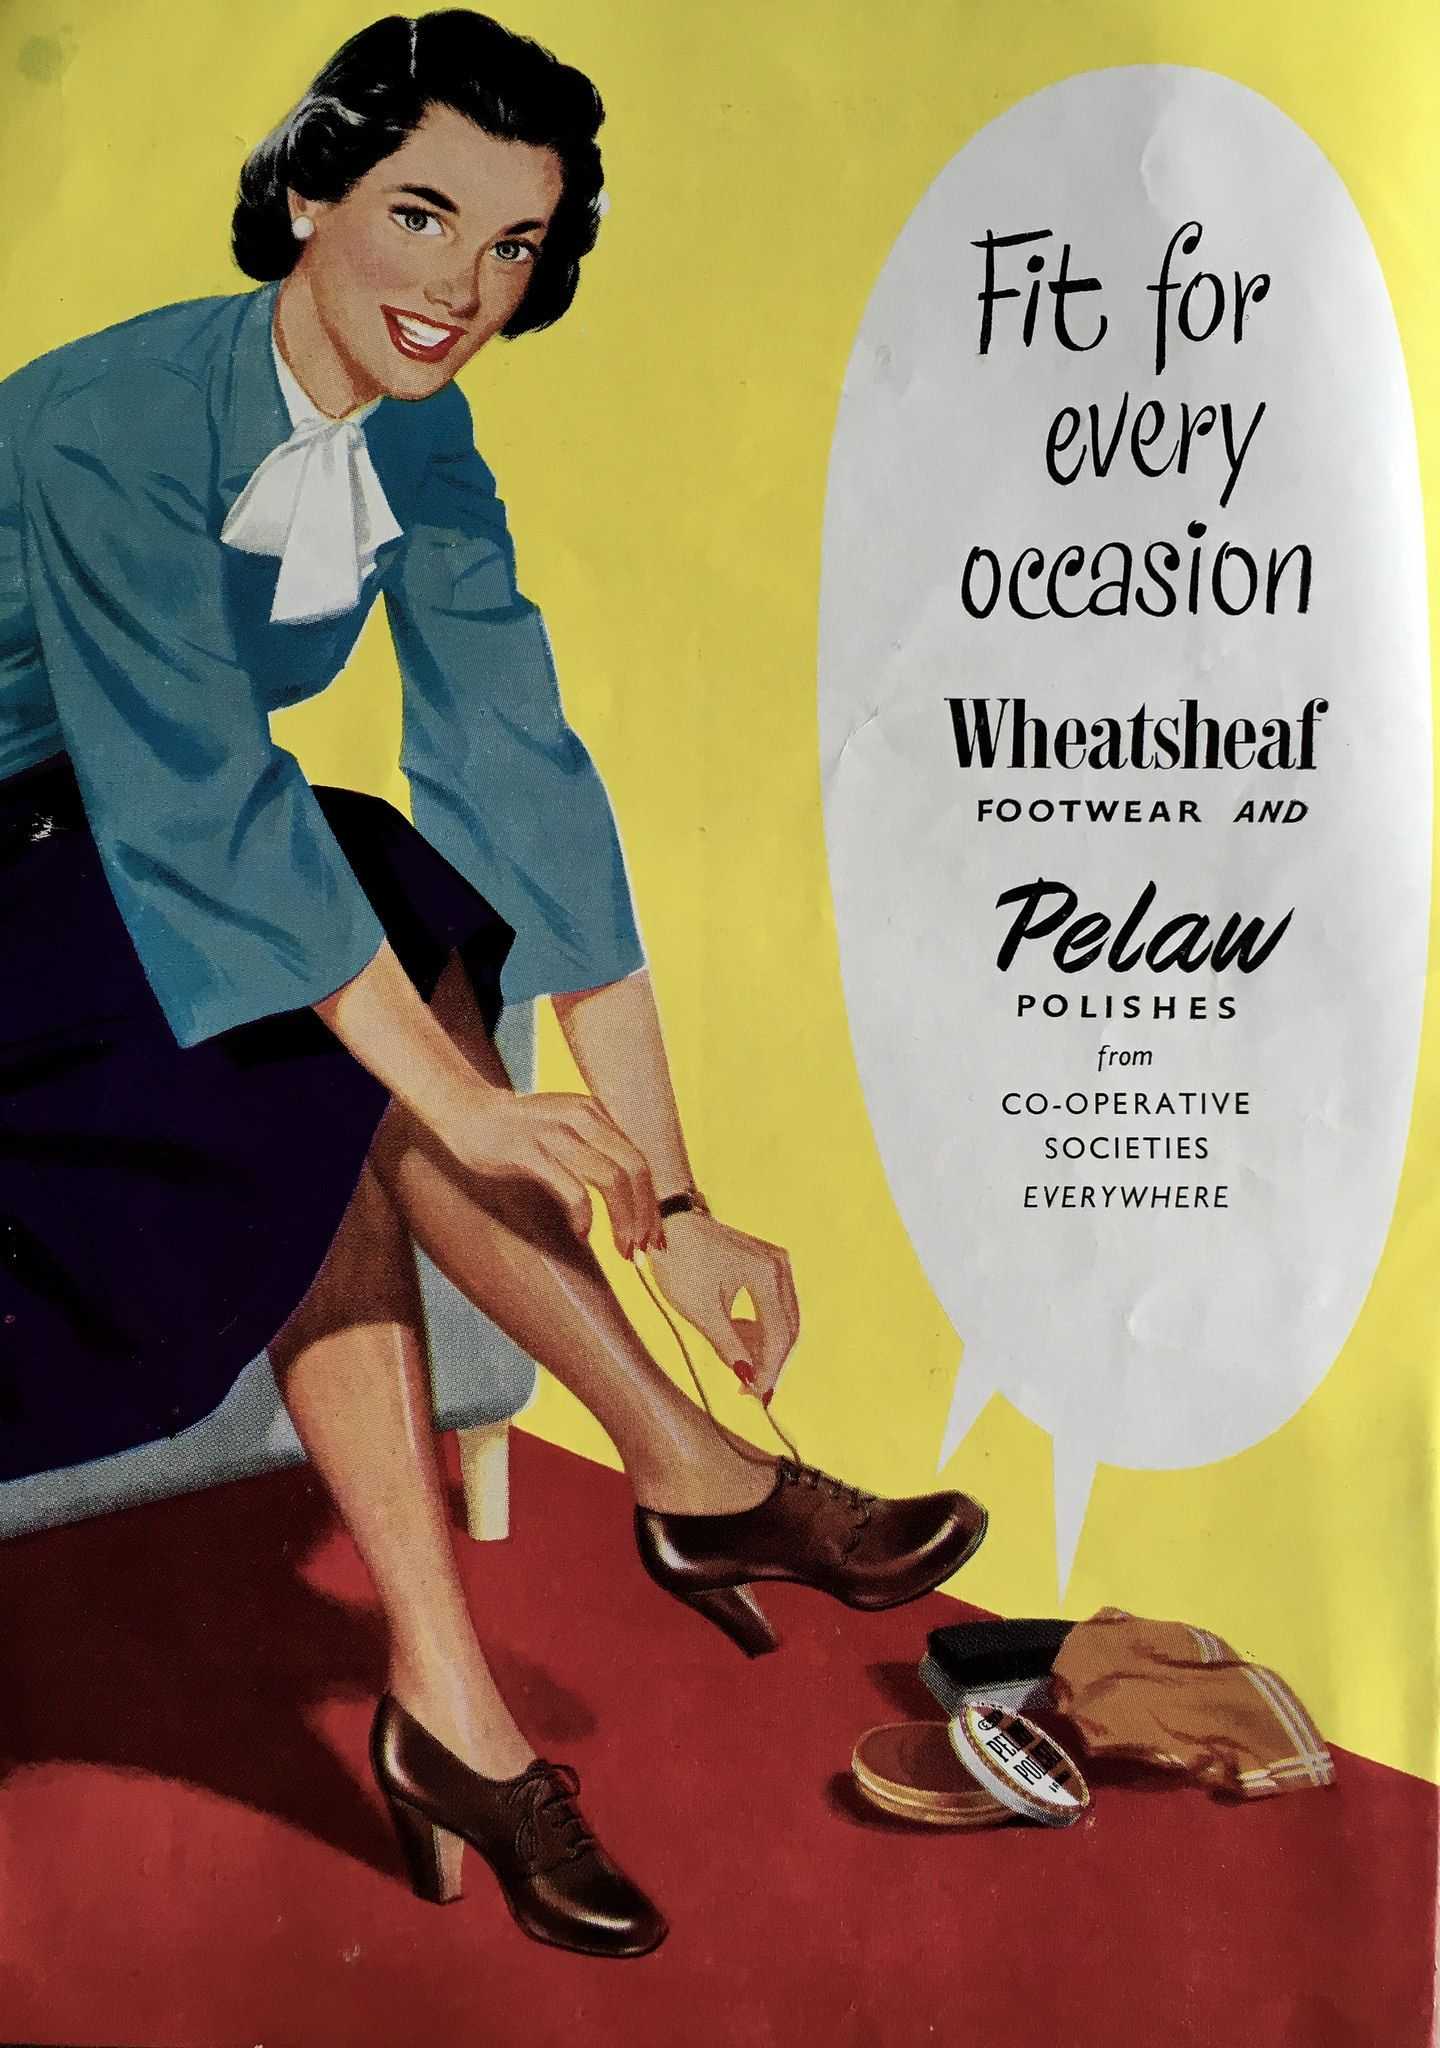 Fit for every occasion Coop Wheatsheaf shoes and Pelaw polish